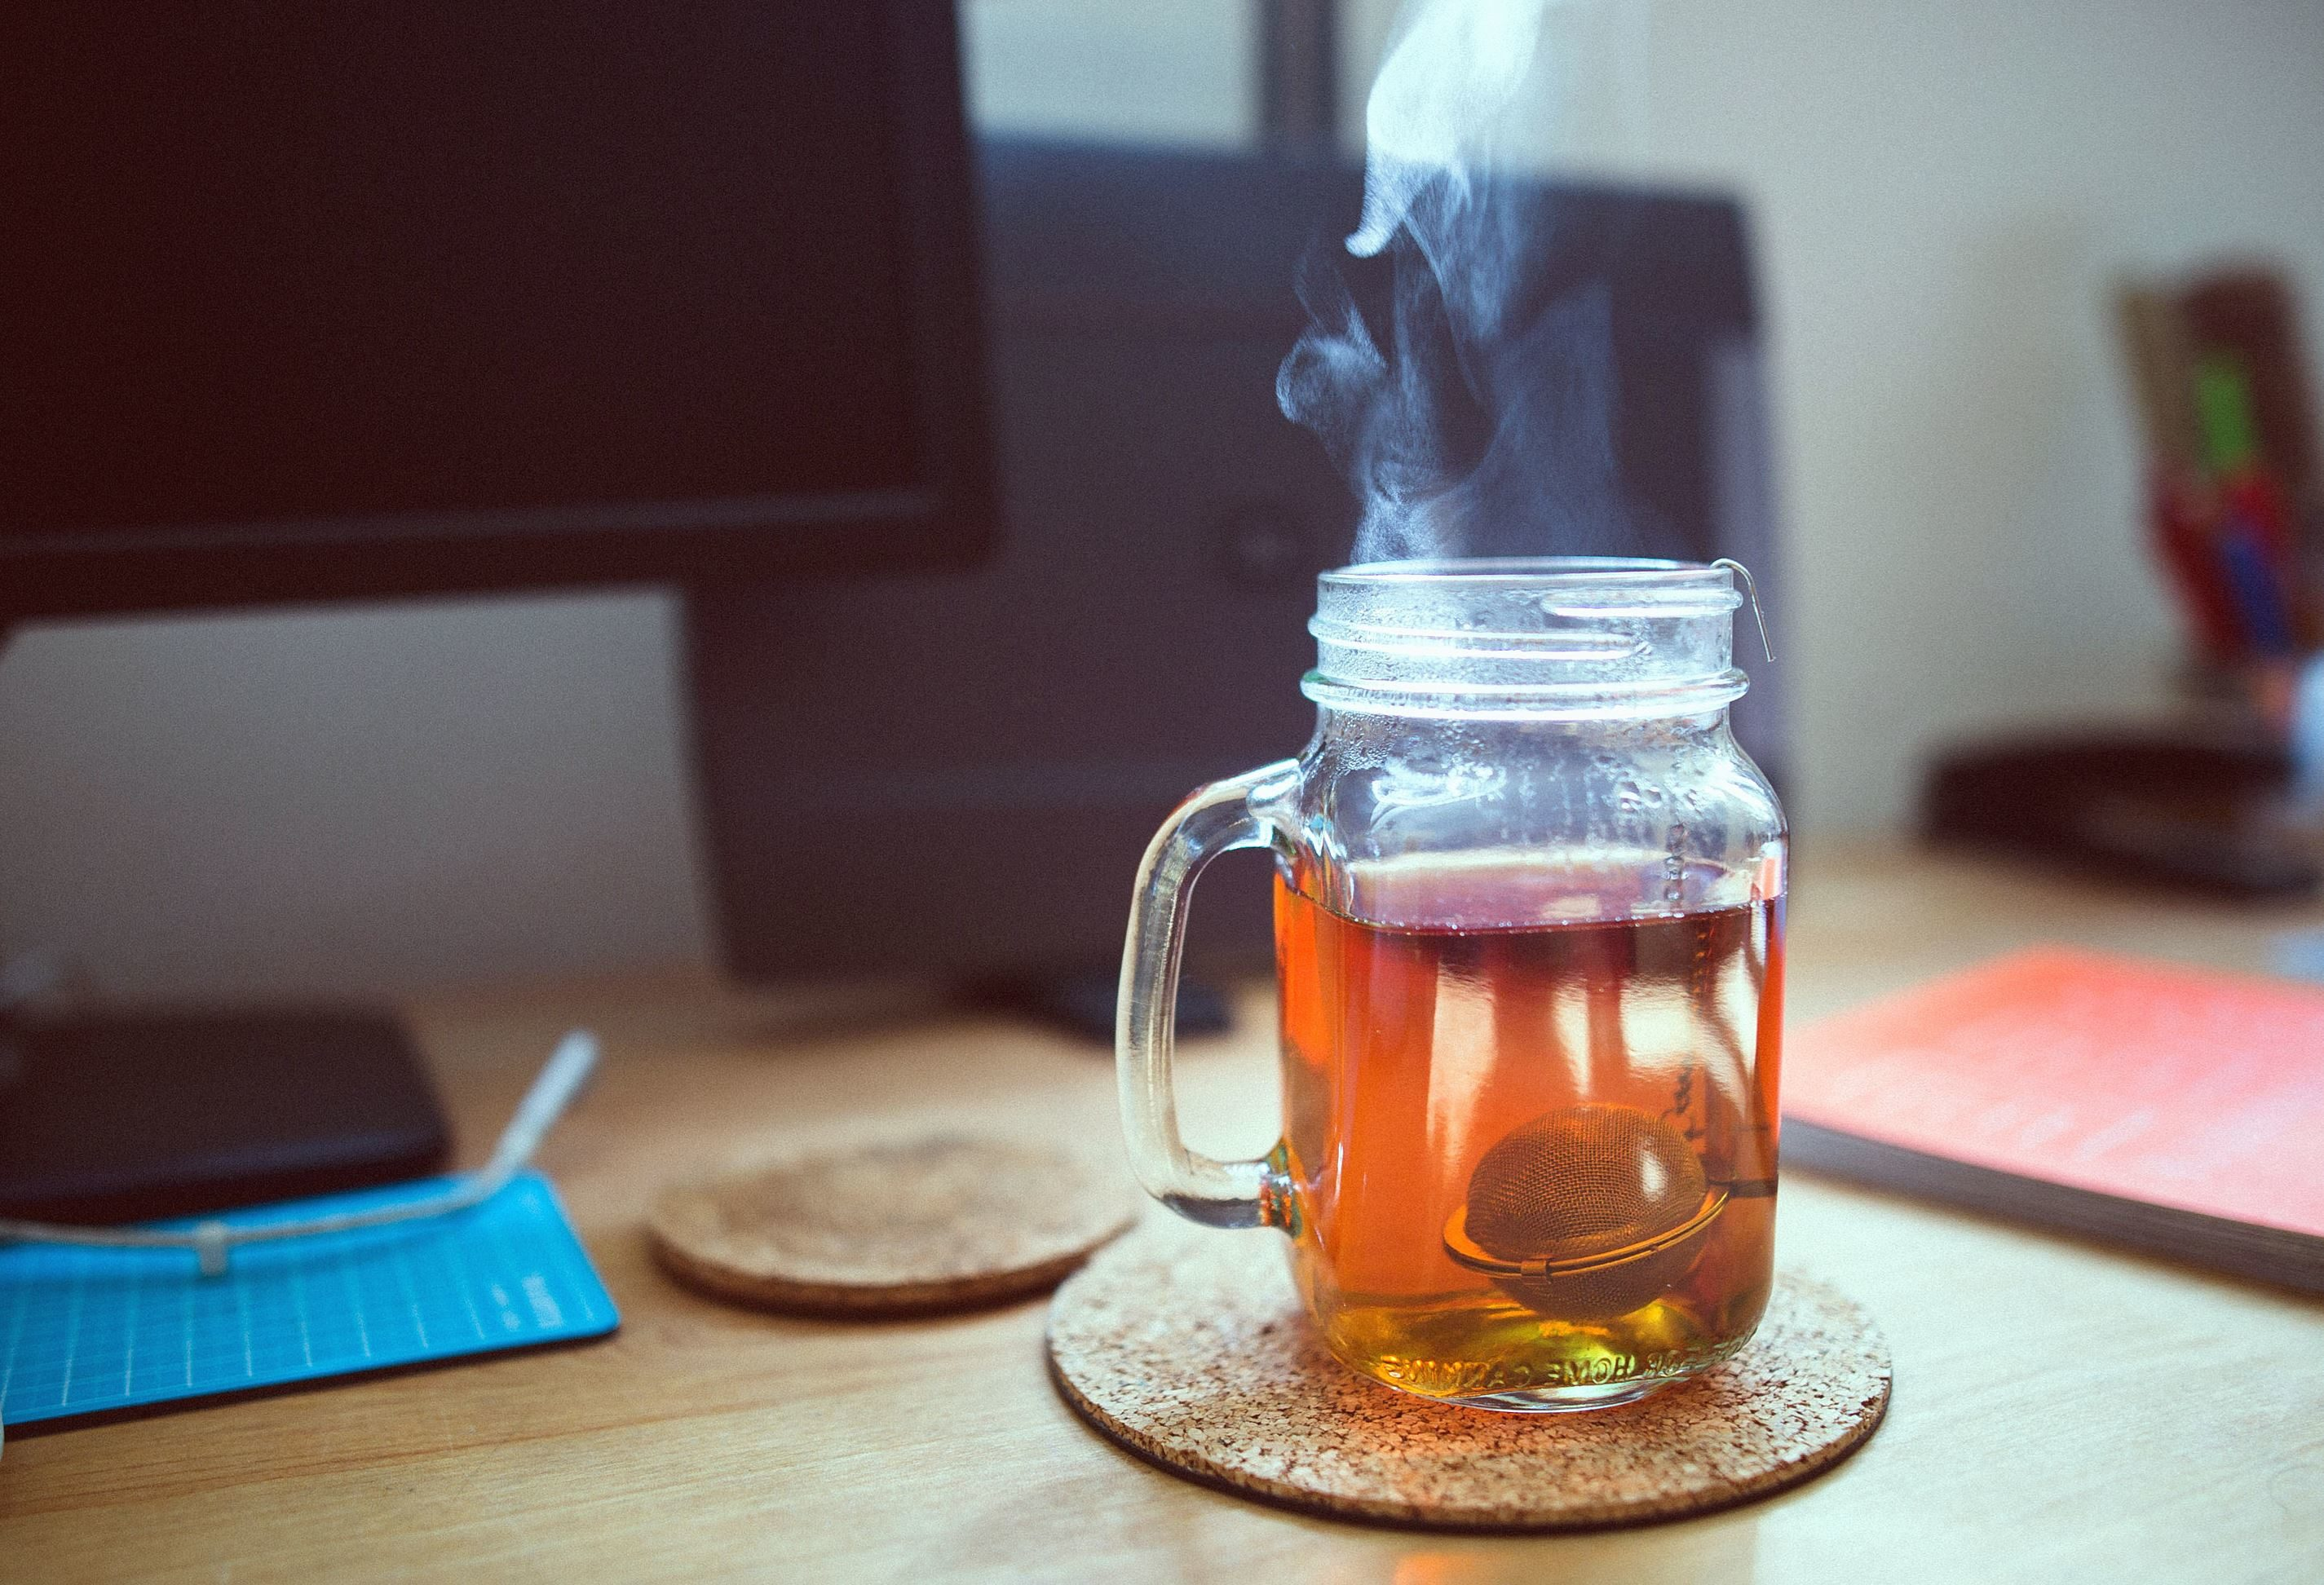 Free Picture Glass Tea Liquid Jar Notebook Smoke Table